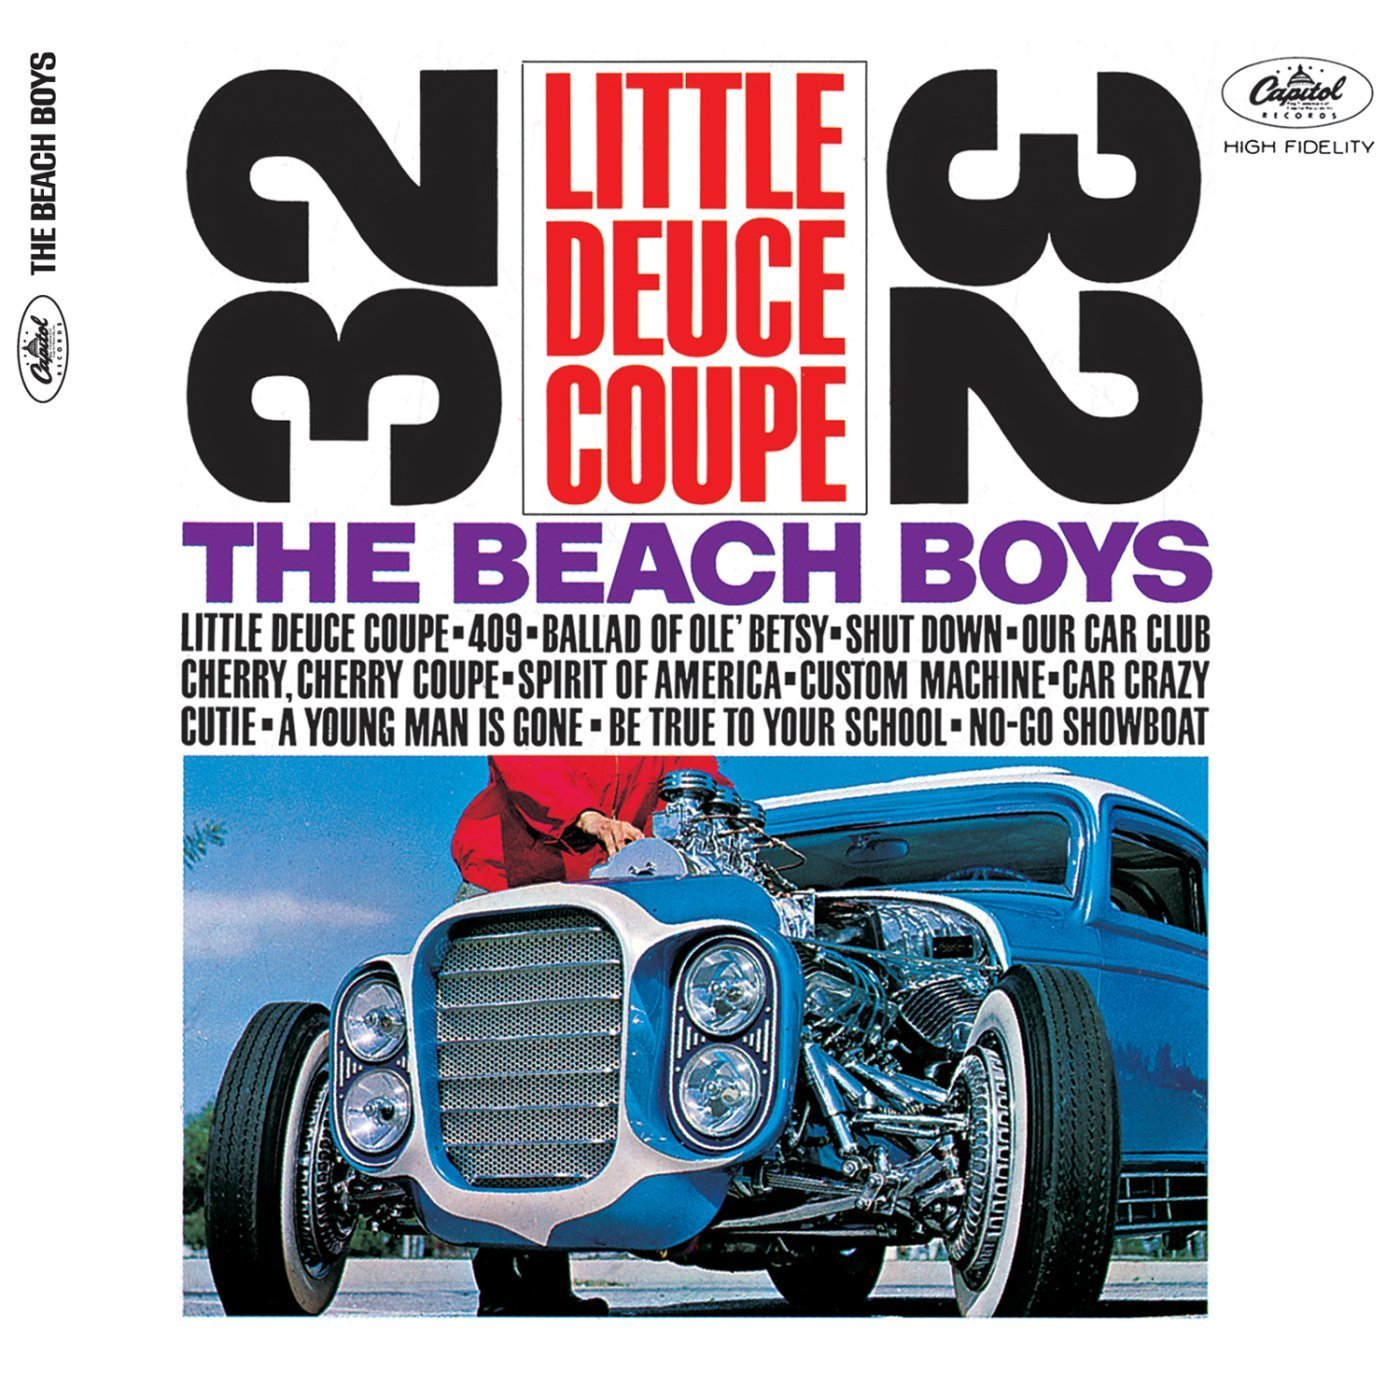 Image result for beach boys album little deuce coupe